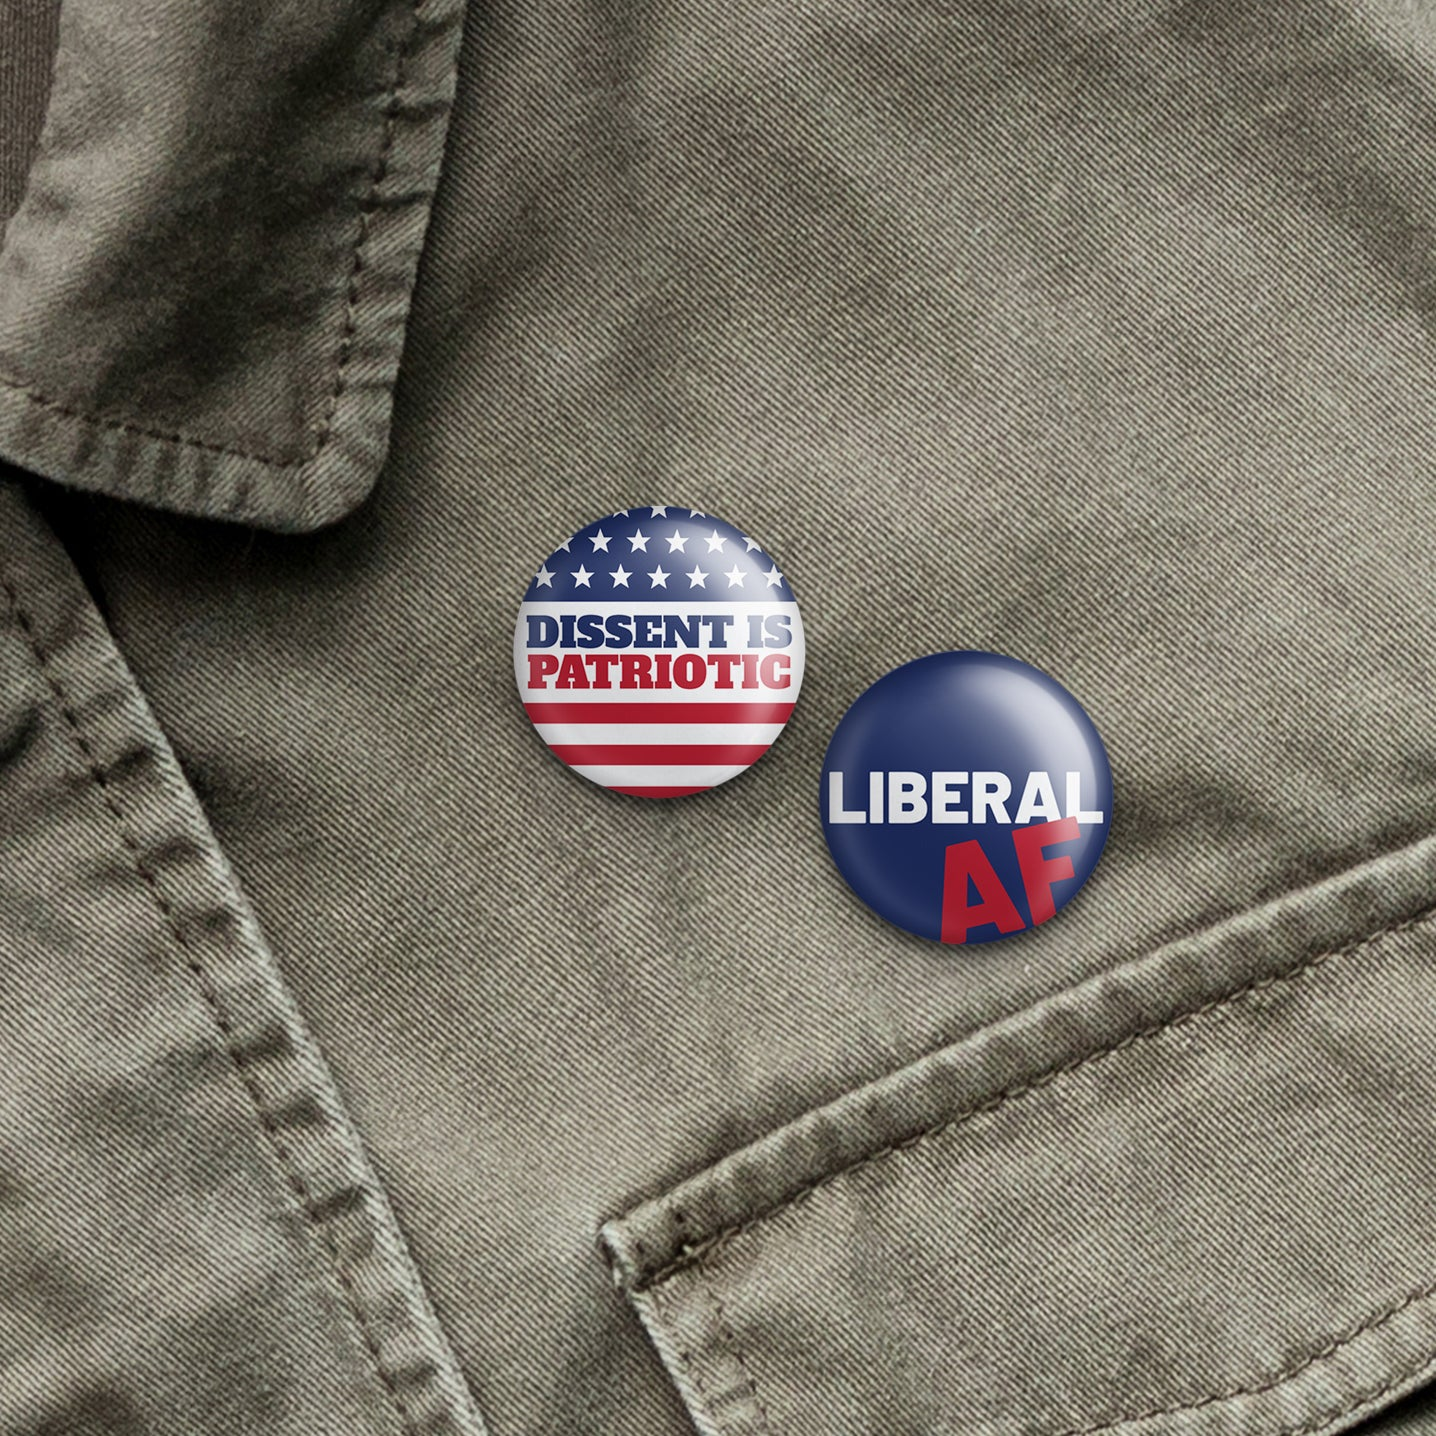 liberal af buttons on denim jacket